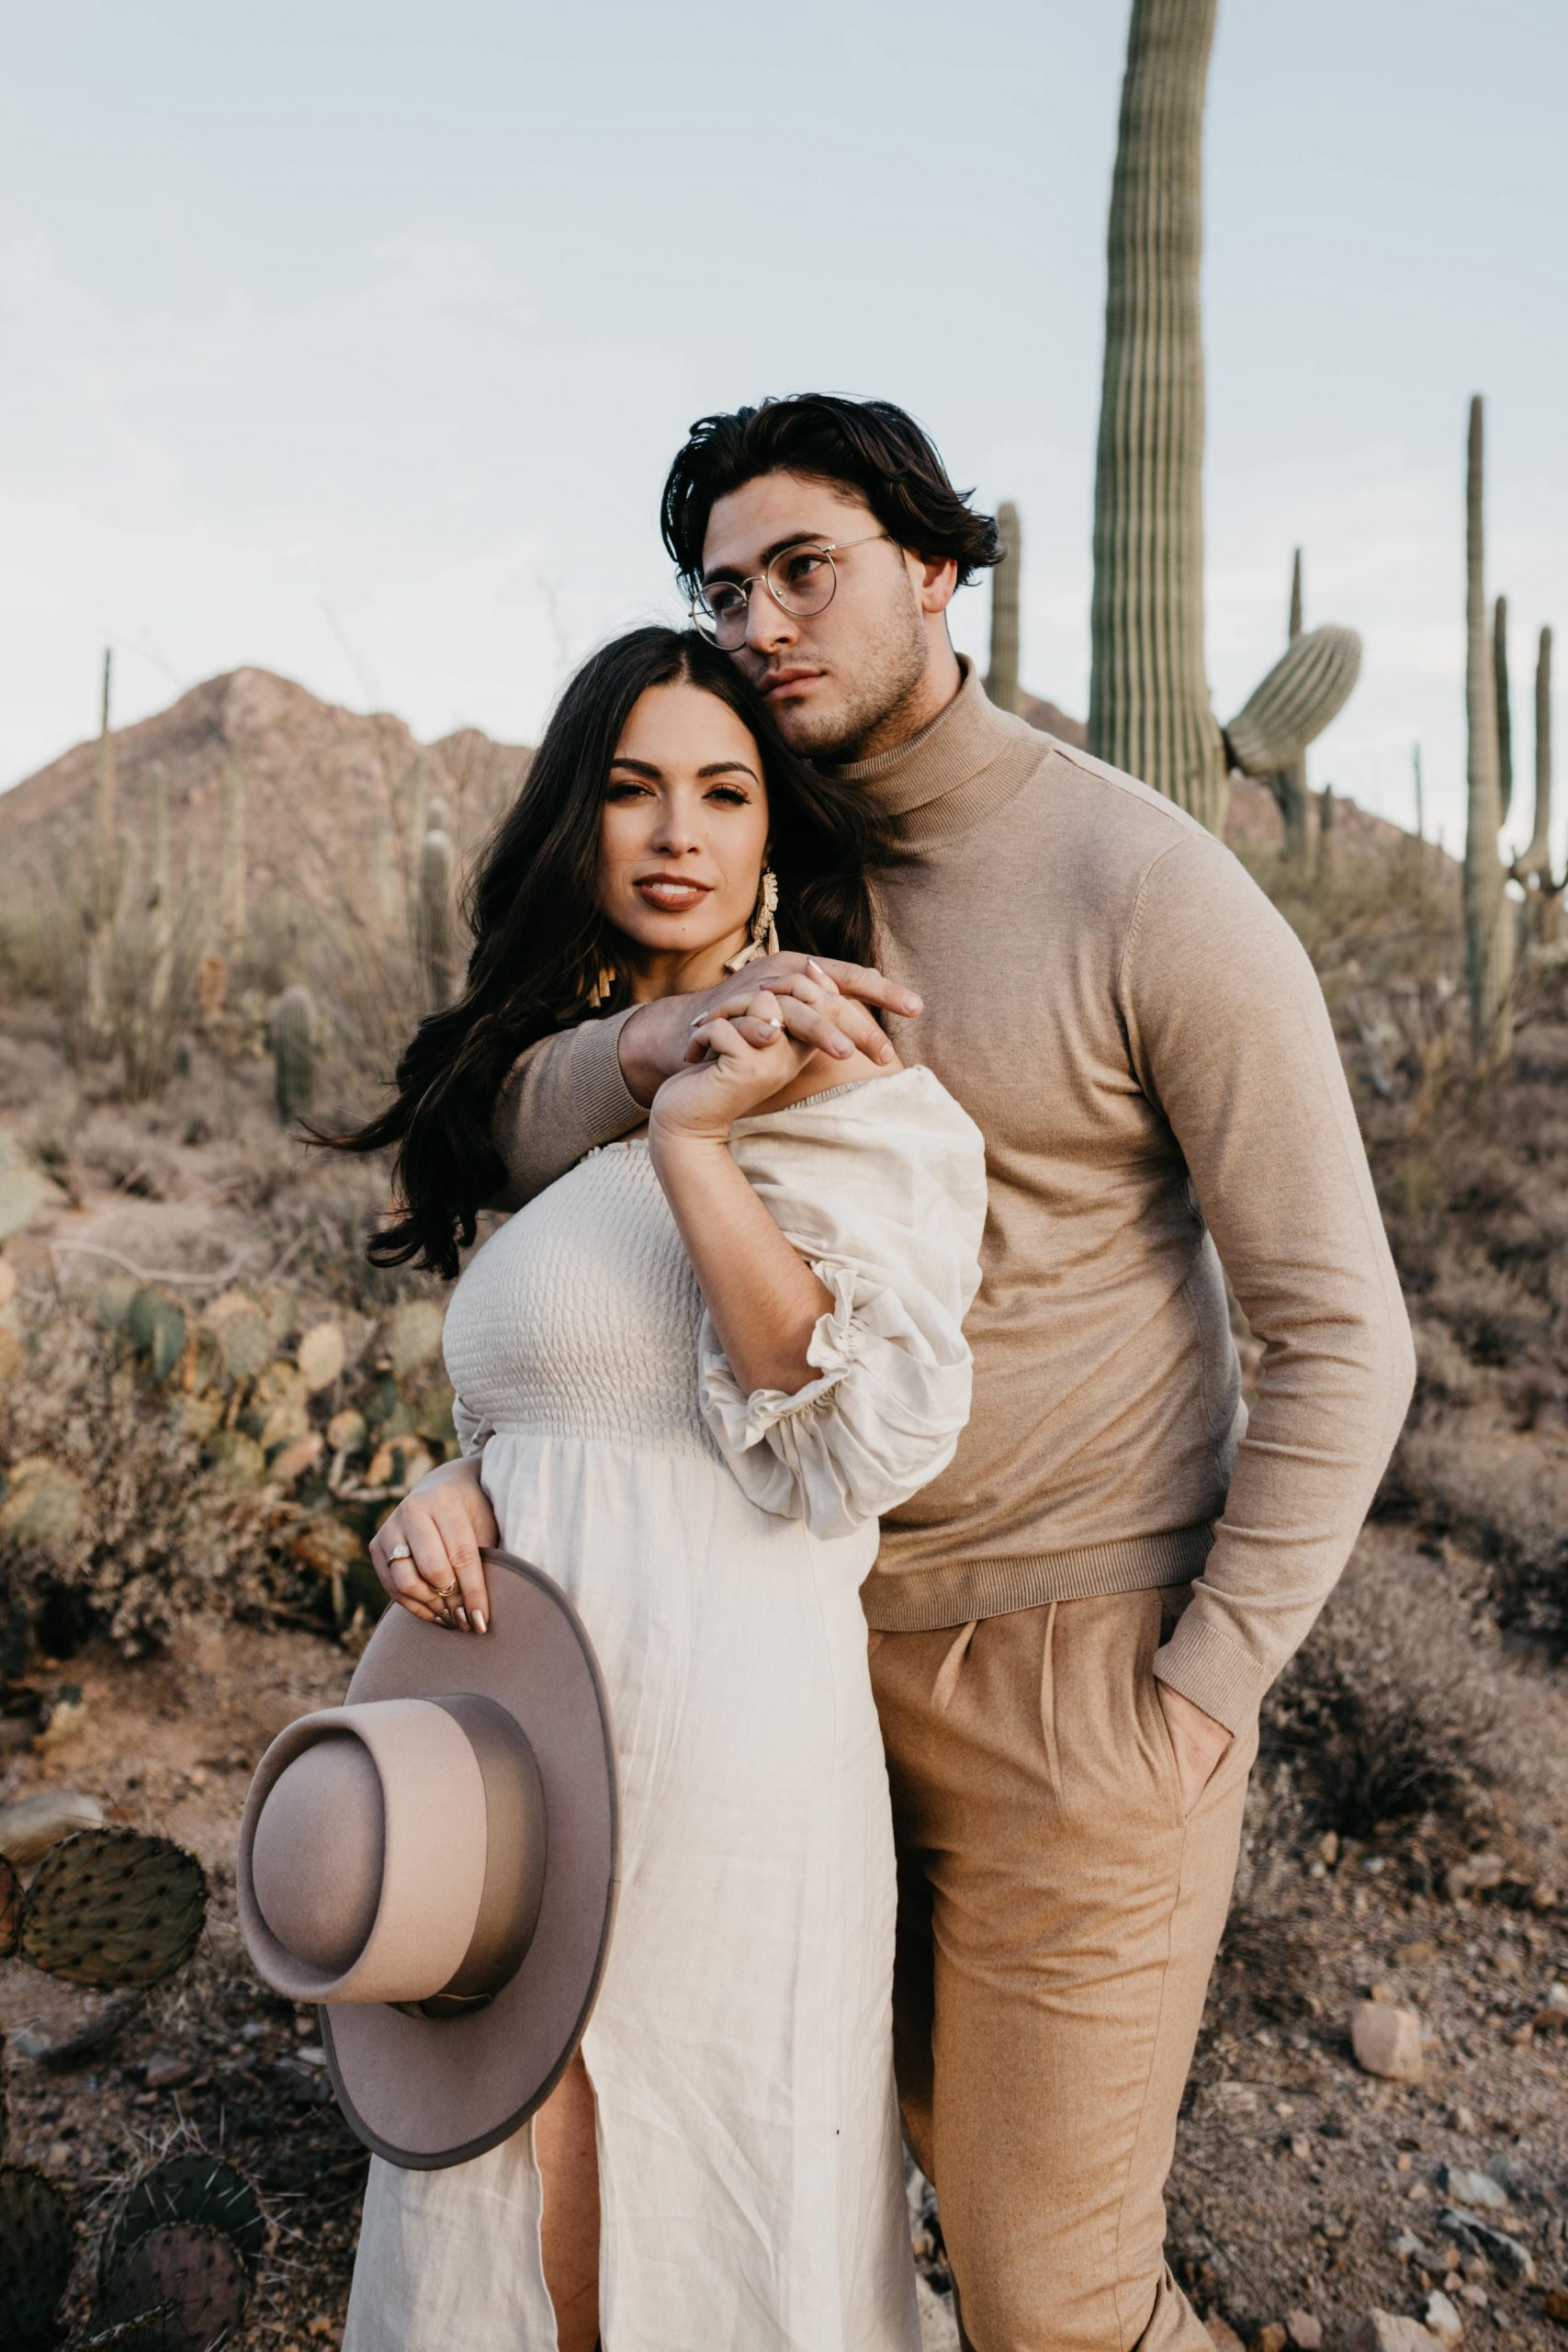 Couple posing for camera in the desert, image by Fatima Elreda Photo